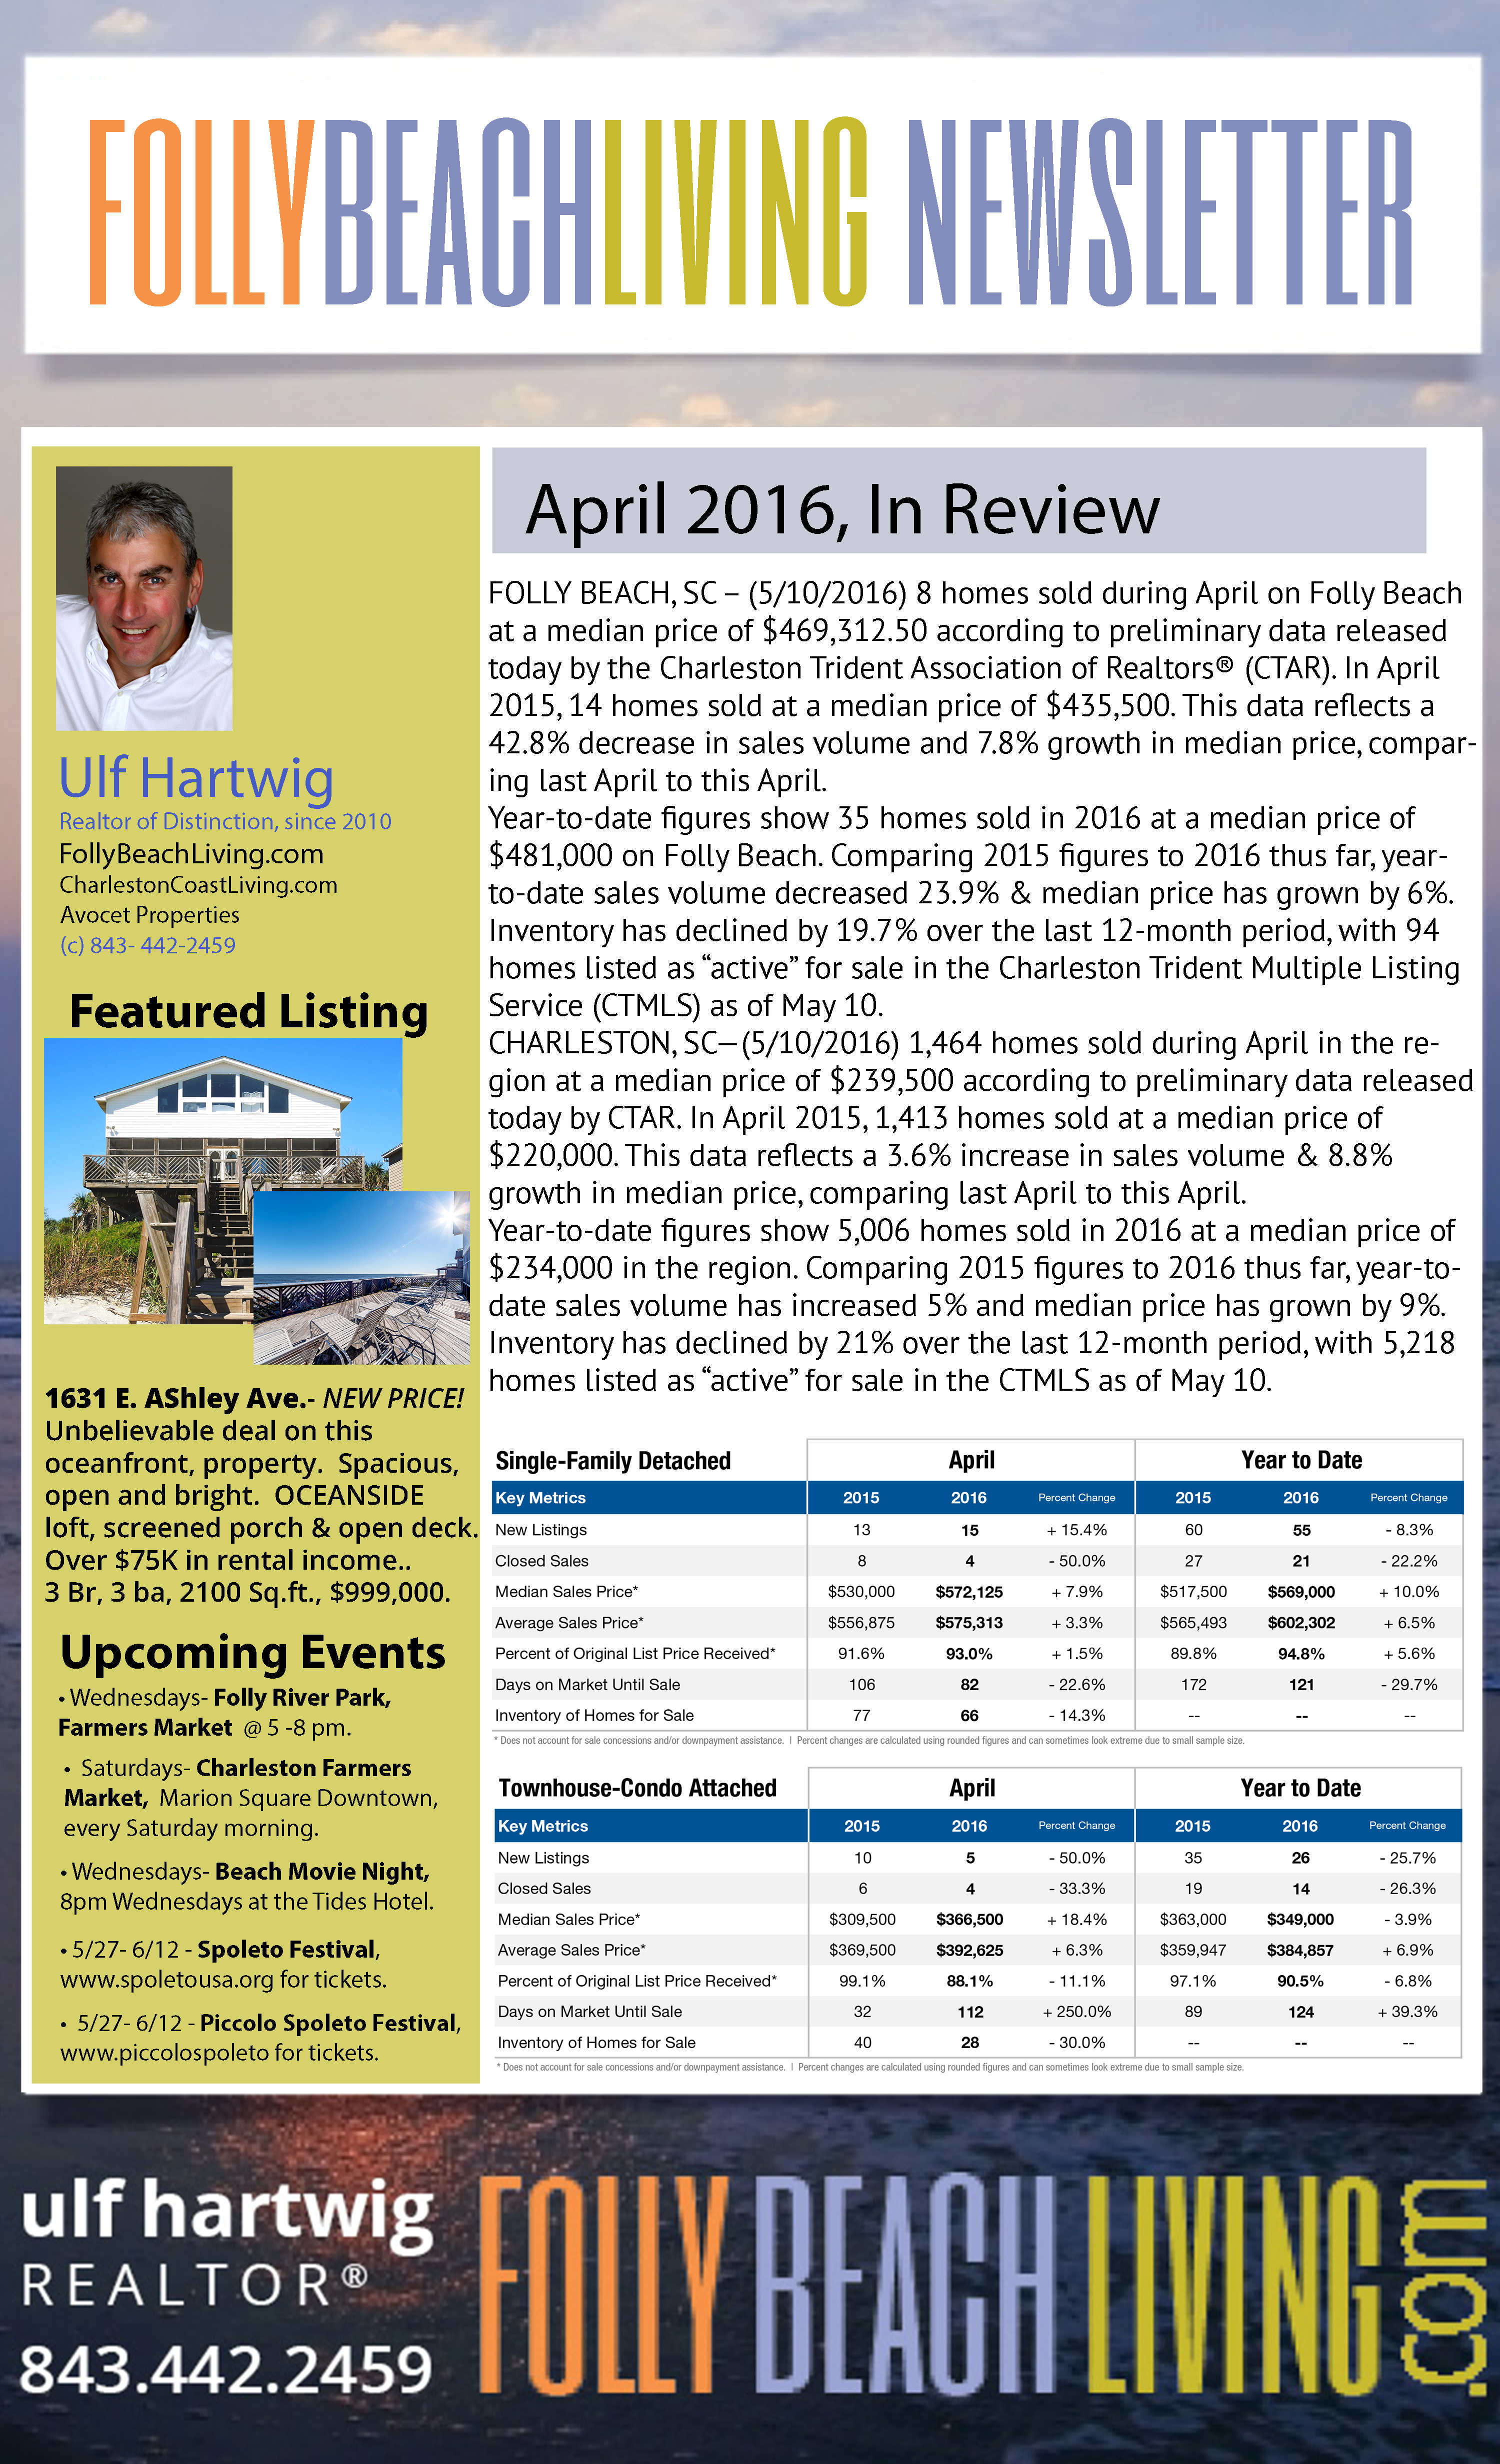 May 2016 Folly Beach Living Newsletter